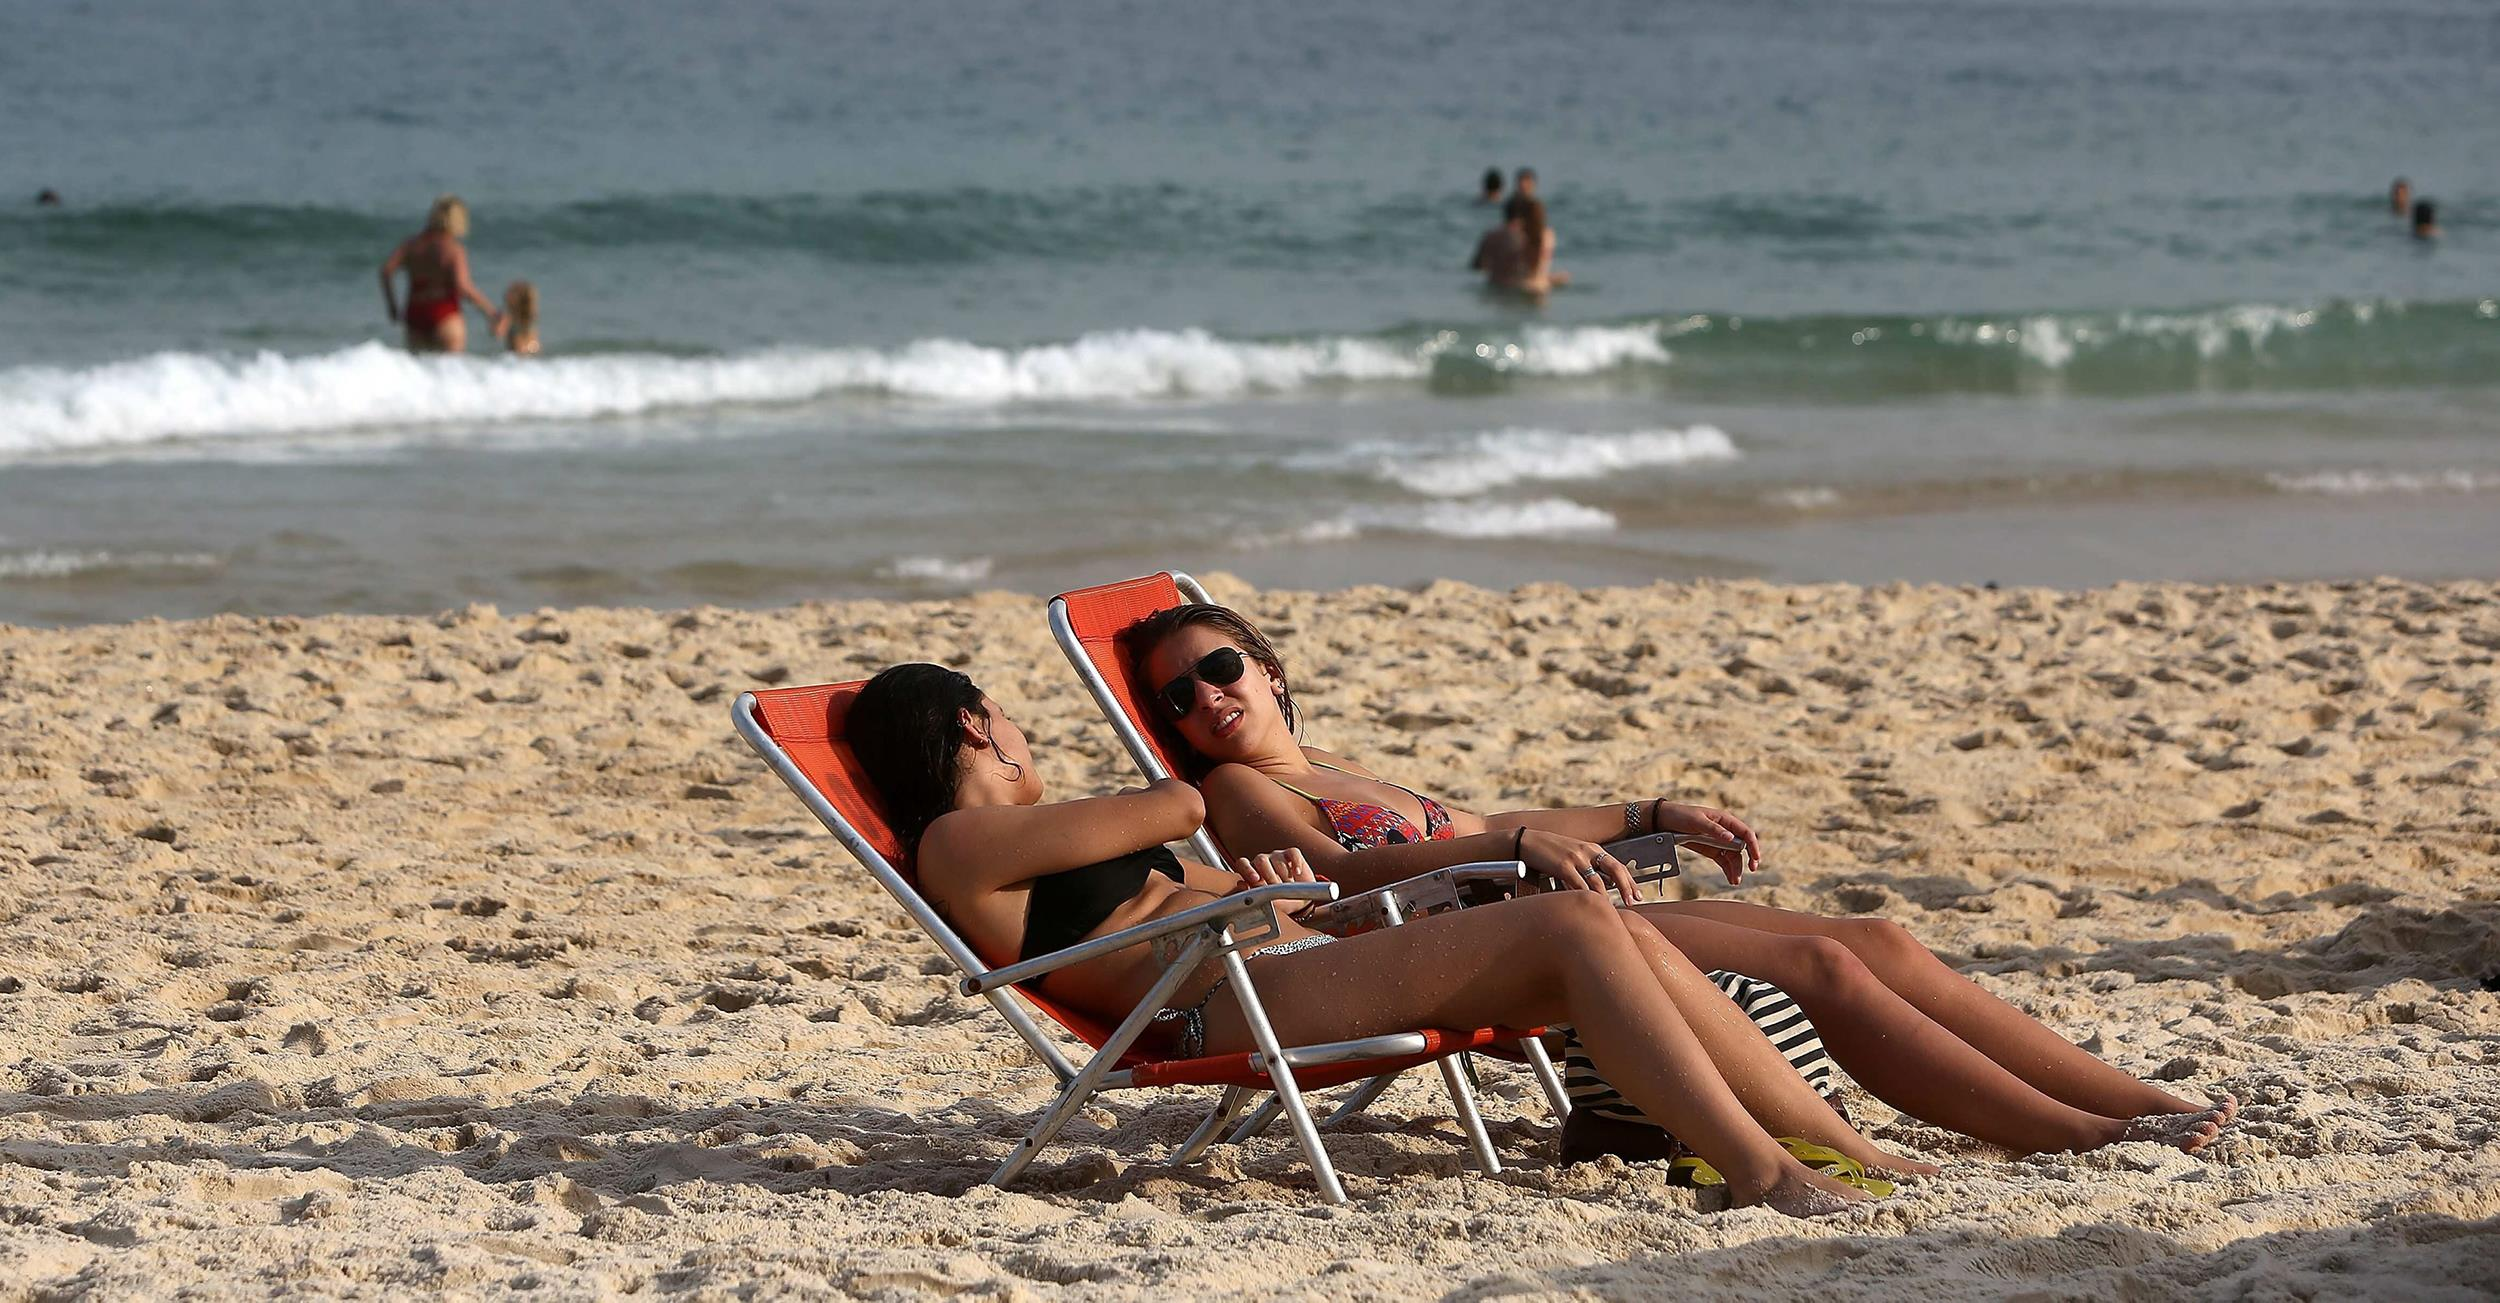 People at The Beach Tanning You May be a Tanning People